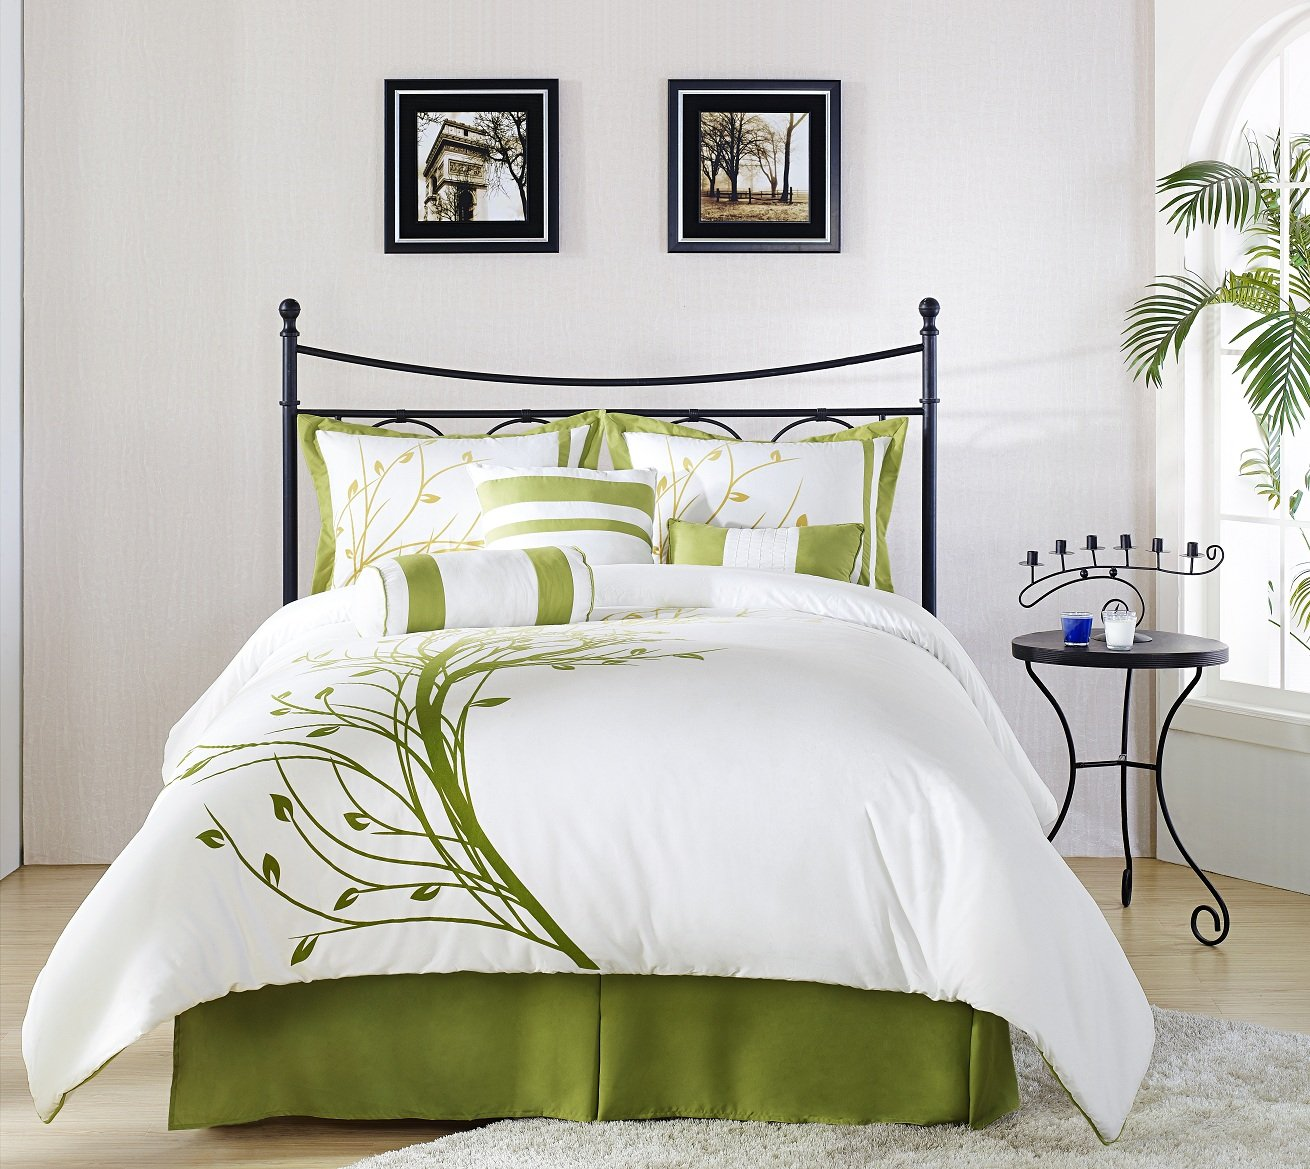 dp or queen white green kitchen home comforter chezmoi com collection set psdc for double tree full amazon piece ref